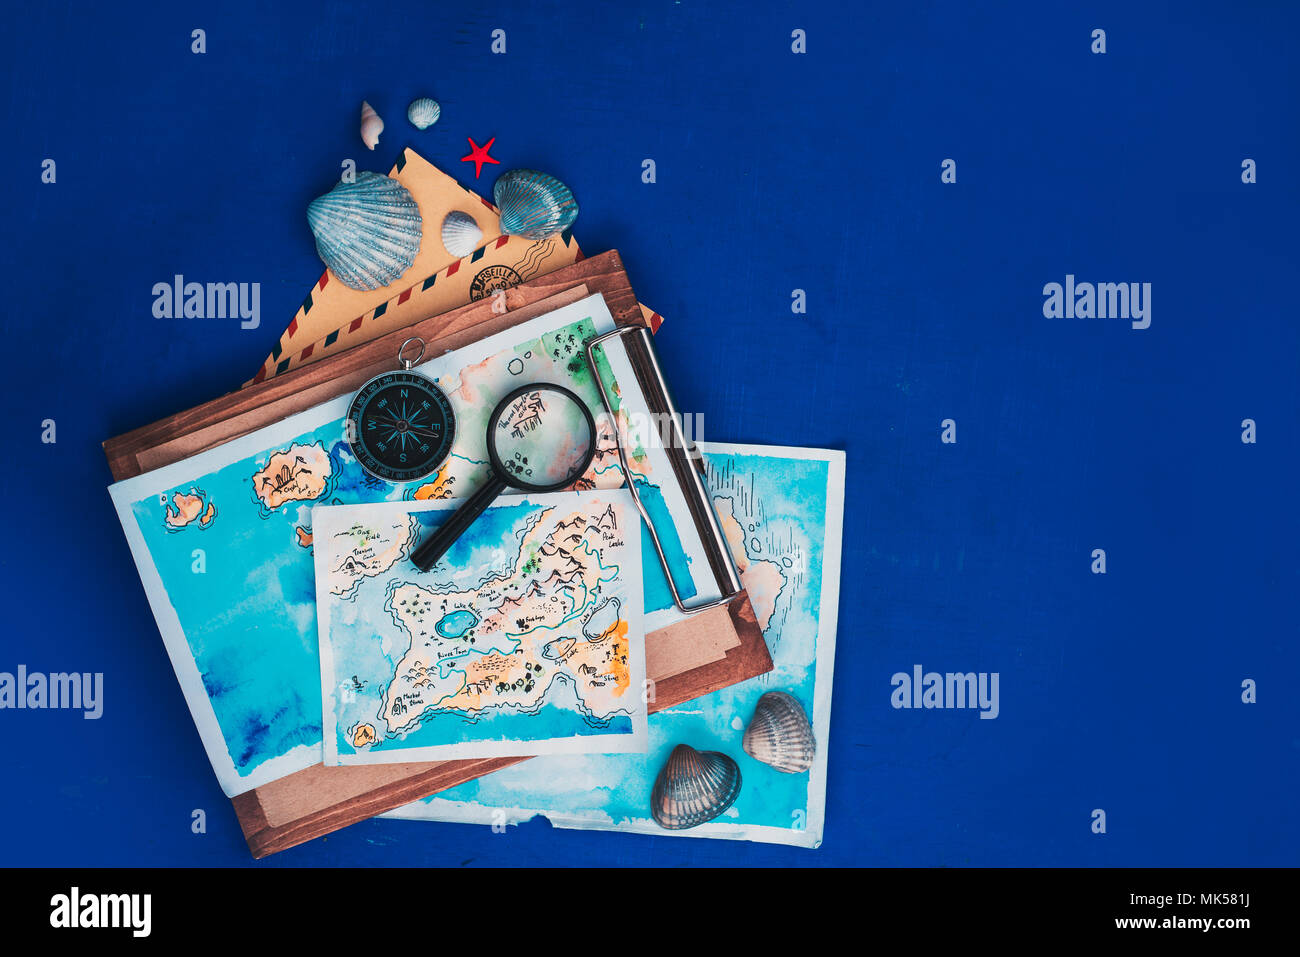 Sea travel and exploration concept. Watercolor maps on a wooden clipboard, compass and magnifying glass flat lay on a navy blue background with copy space - Stock Image